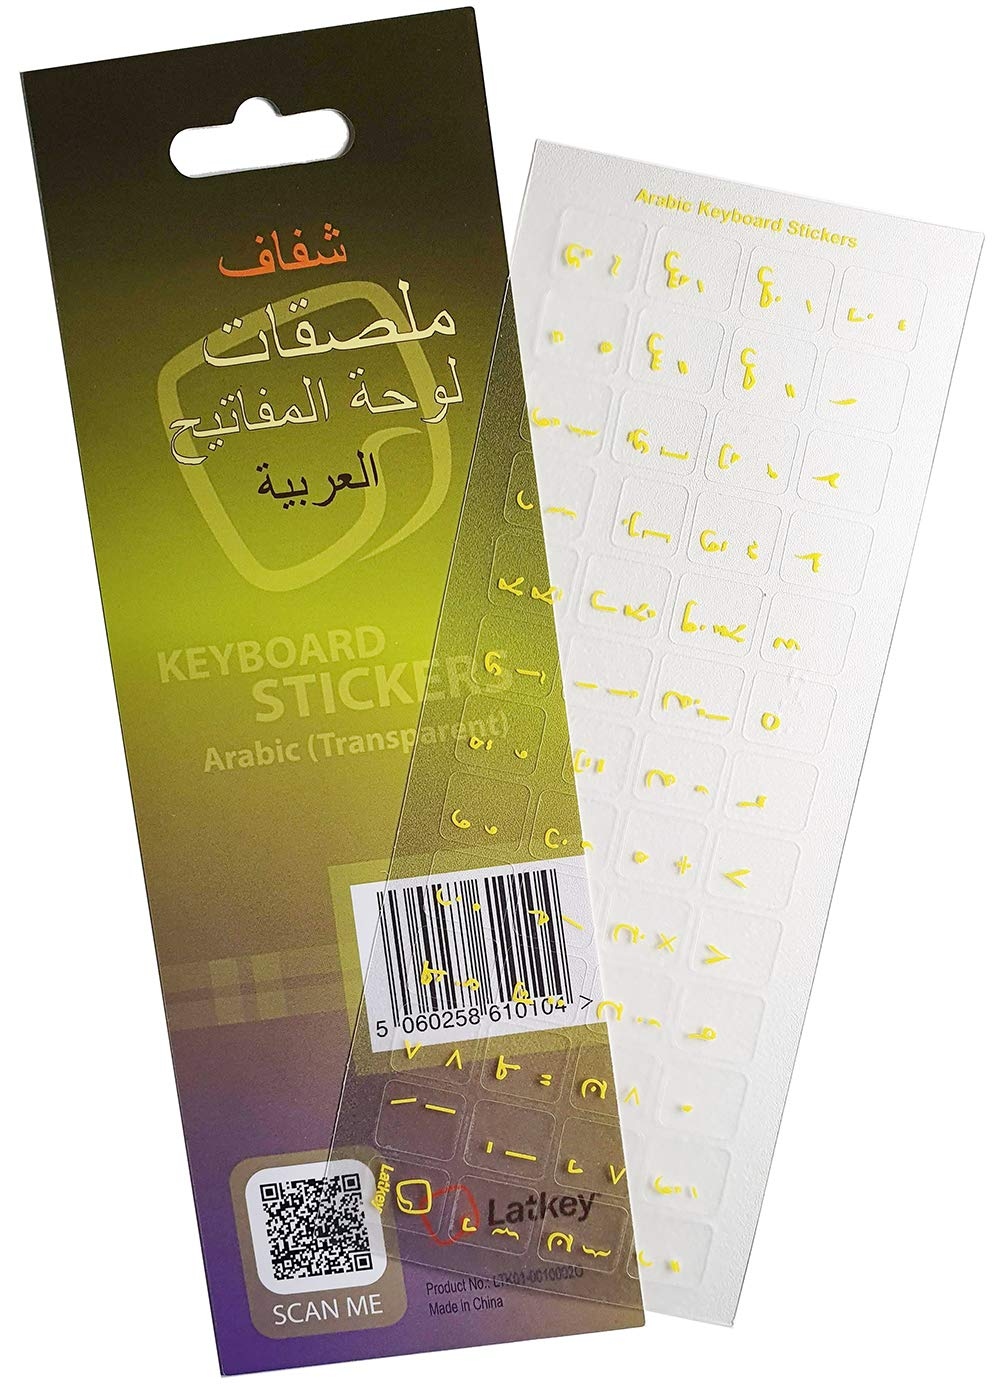 Arabic Keyboard Stickers (Yellow) for Laptop, Desktop PC Computer, MacBook (Keyboard Overlay with Yellow Letters on Transparent Clear Background, Best Keyboard Cover Alternative)